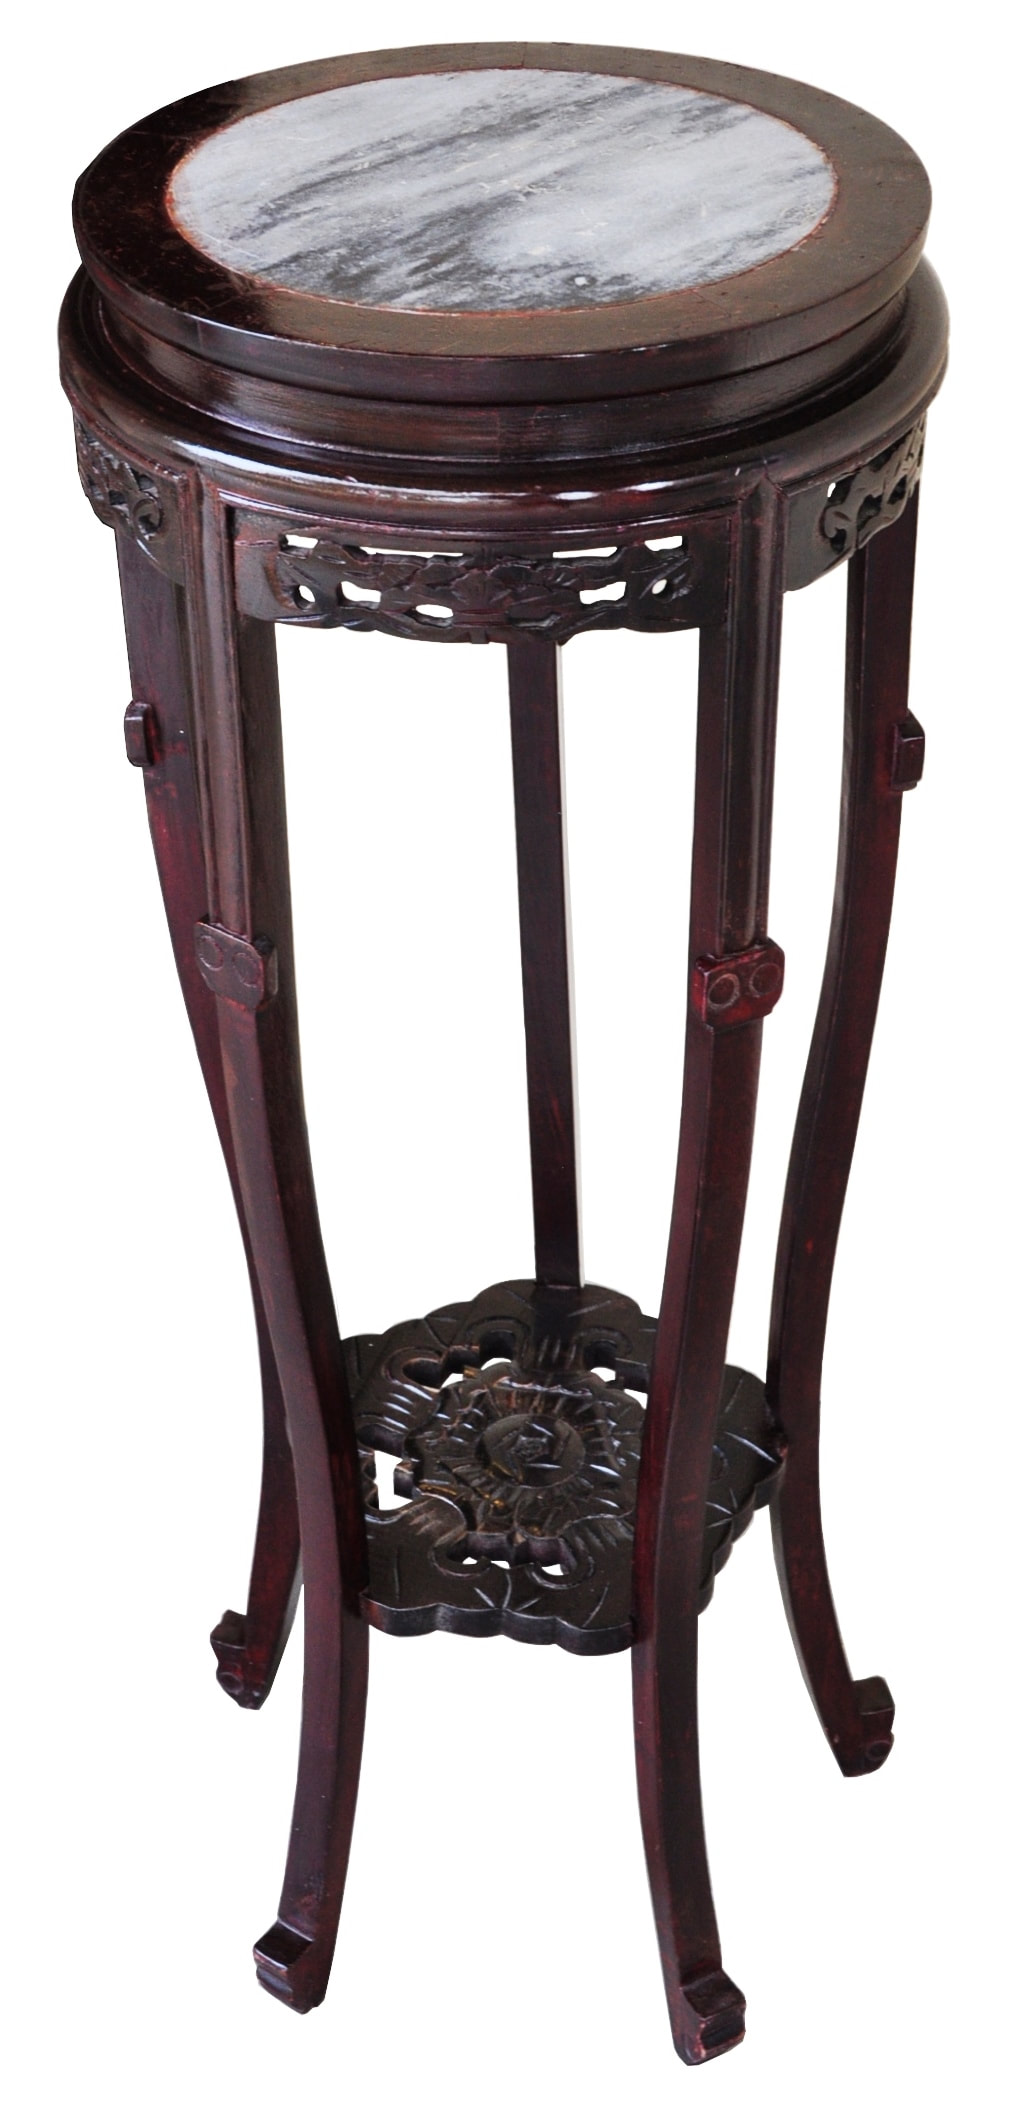 Chinese carved rosewood pedestal with inset marble top